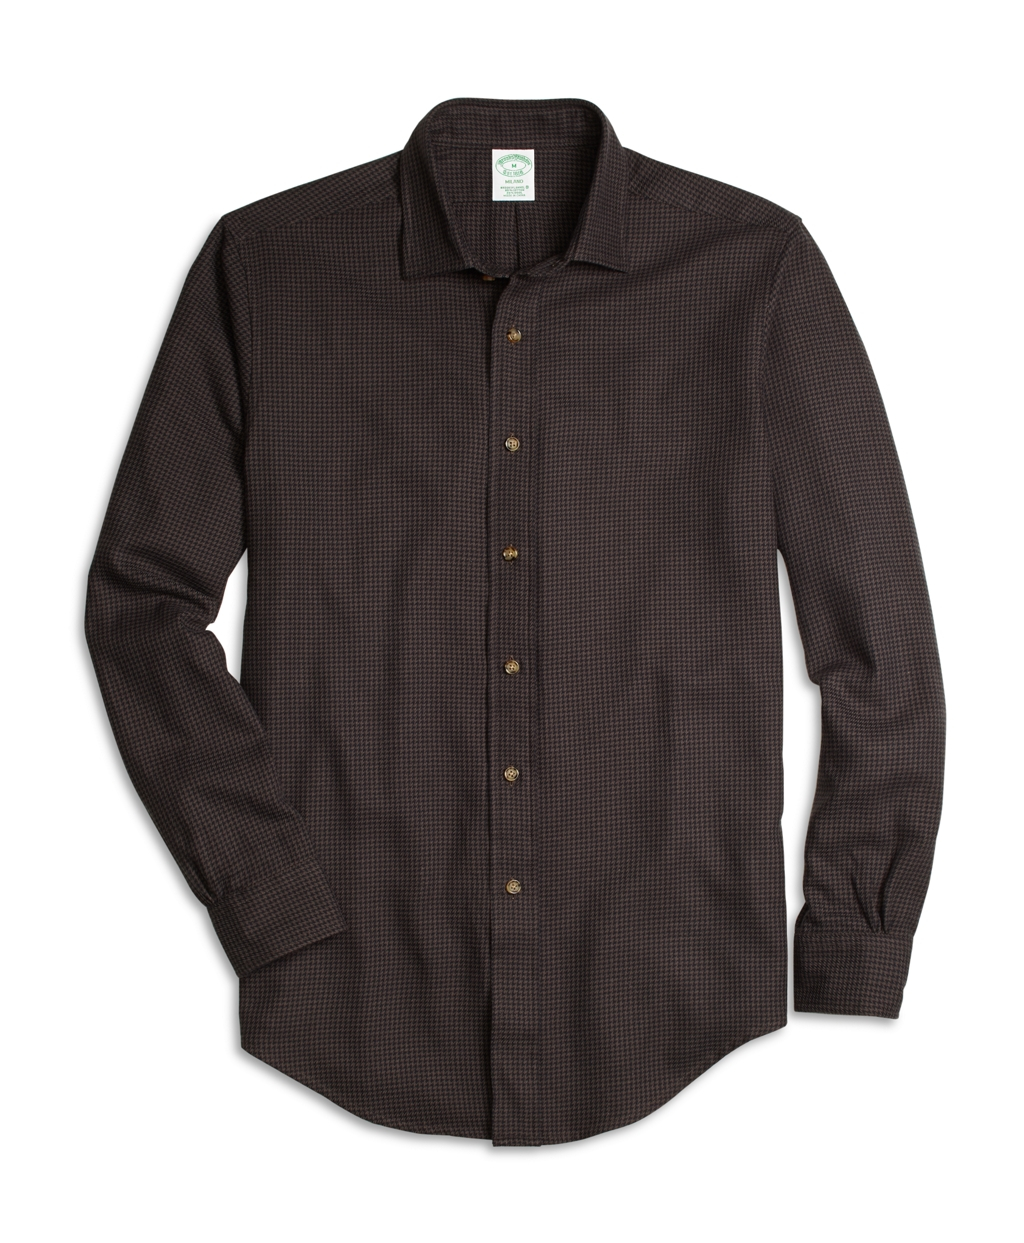 Lyst brooks brothers brooksflannel madison fit for Brooks brothers sports shirts